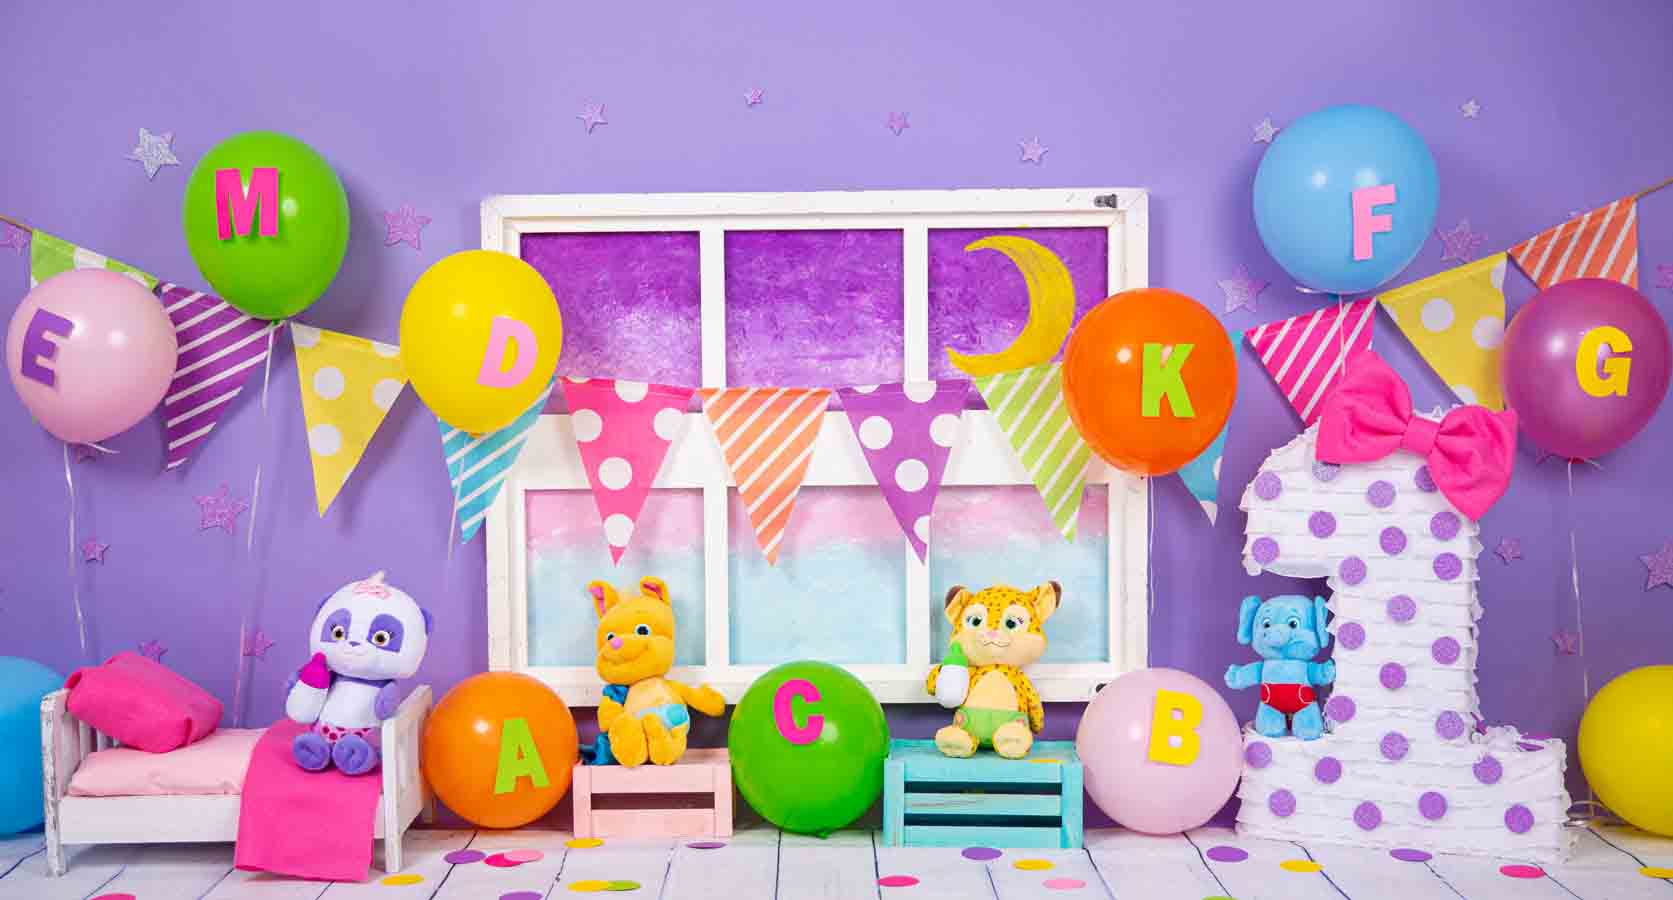 Fox Rolled Vinyl Cake Smash Children Birthday Backdrop Designed By Blanca Perez